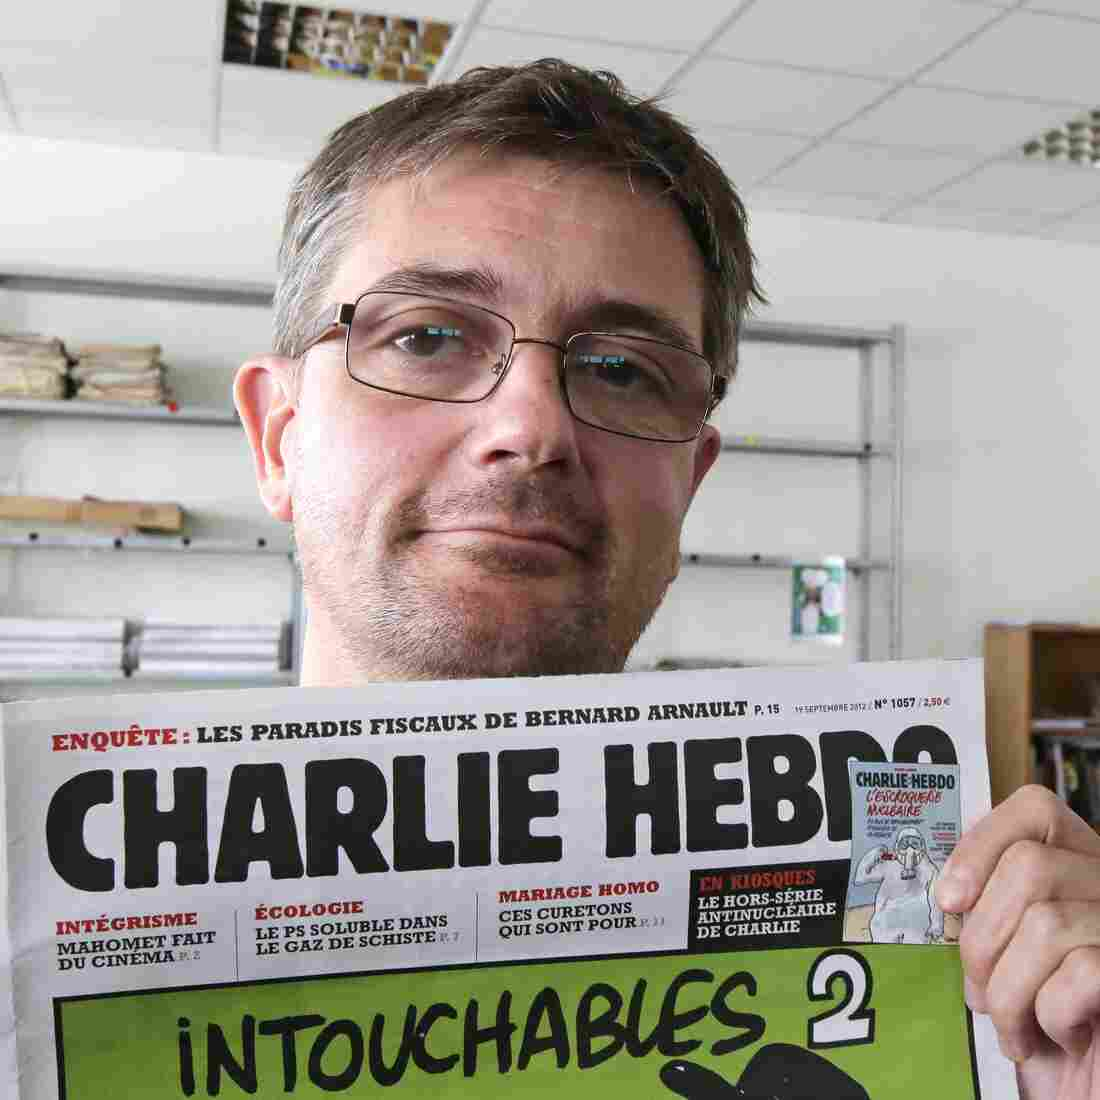 6 Novelists Withdraw From Event Honoring 'Charlie Hebdo' For Free Speech